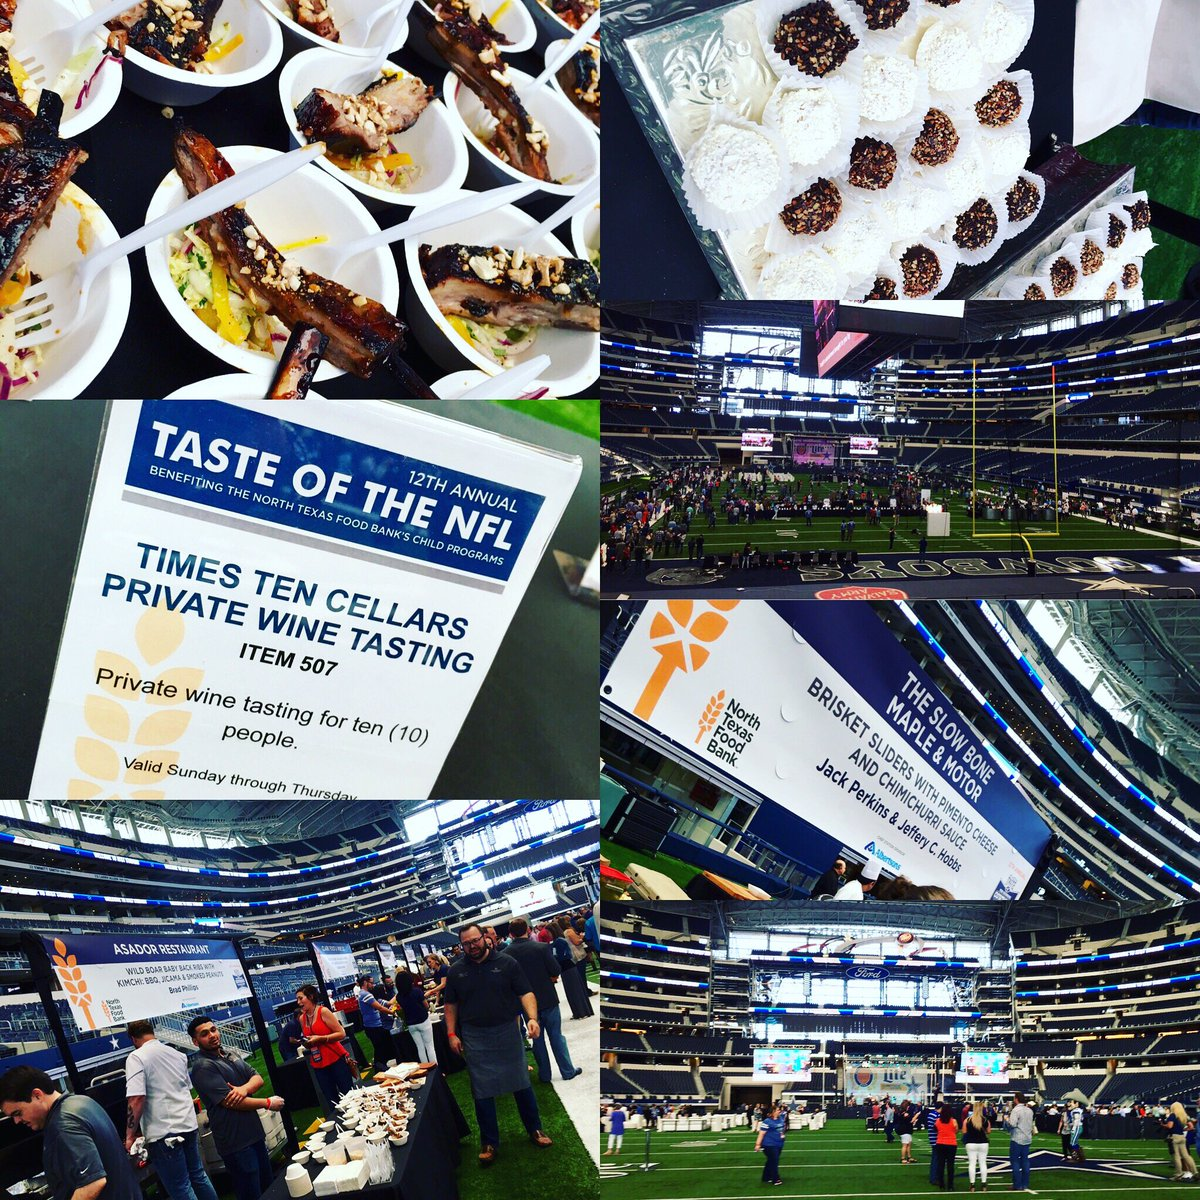 .@ntfb's #TNFLdallas is our kind of party! 🏈#PartyWithAPurpose #FightHunger https://t.co/VPUL9aqw1t